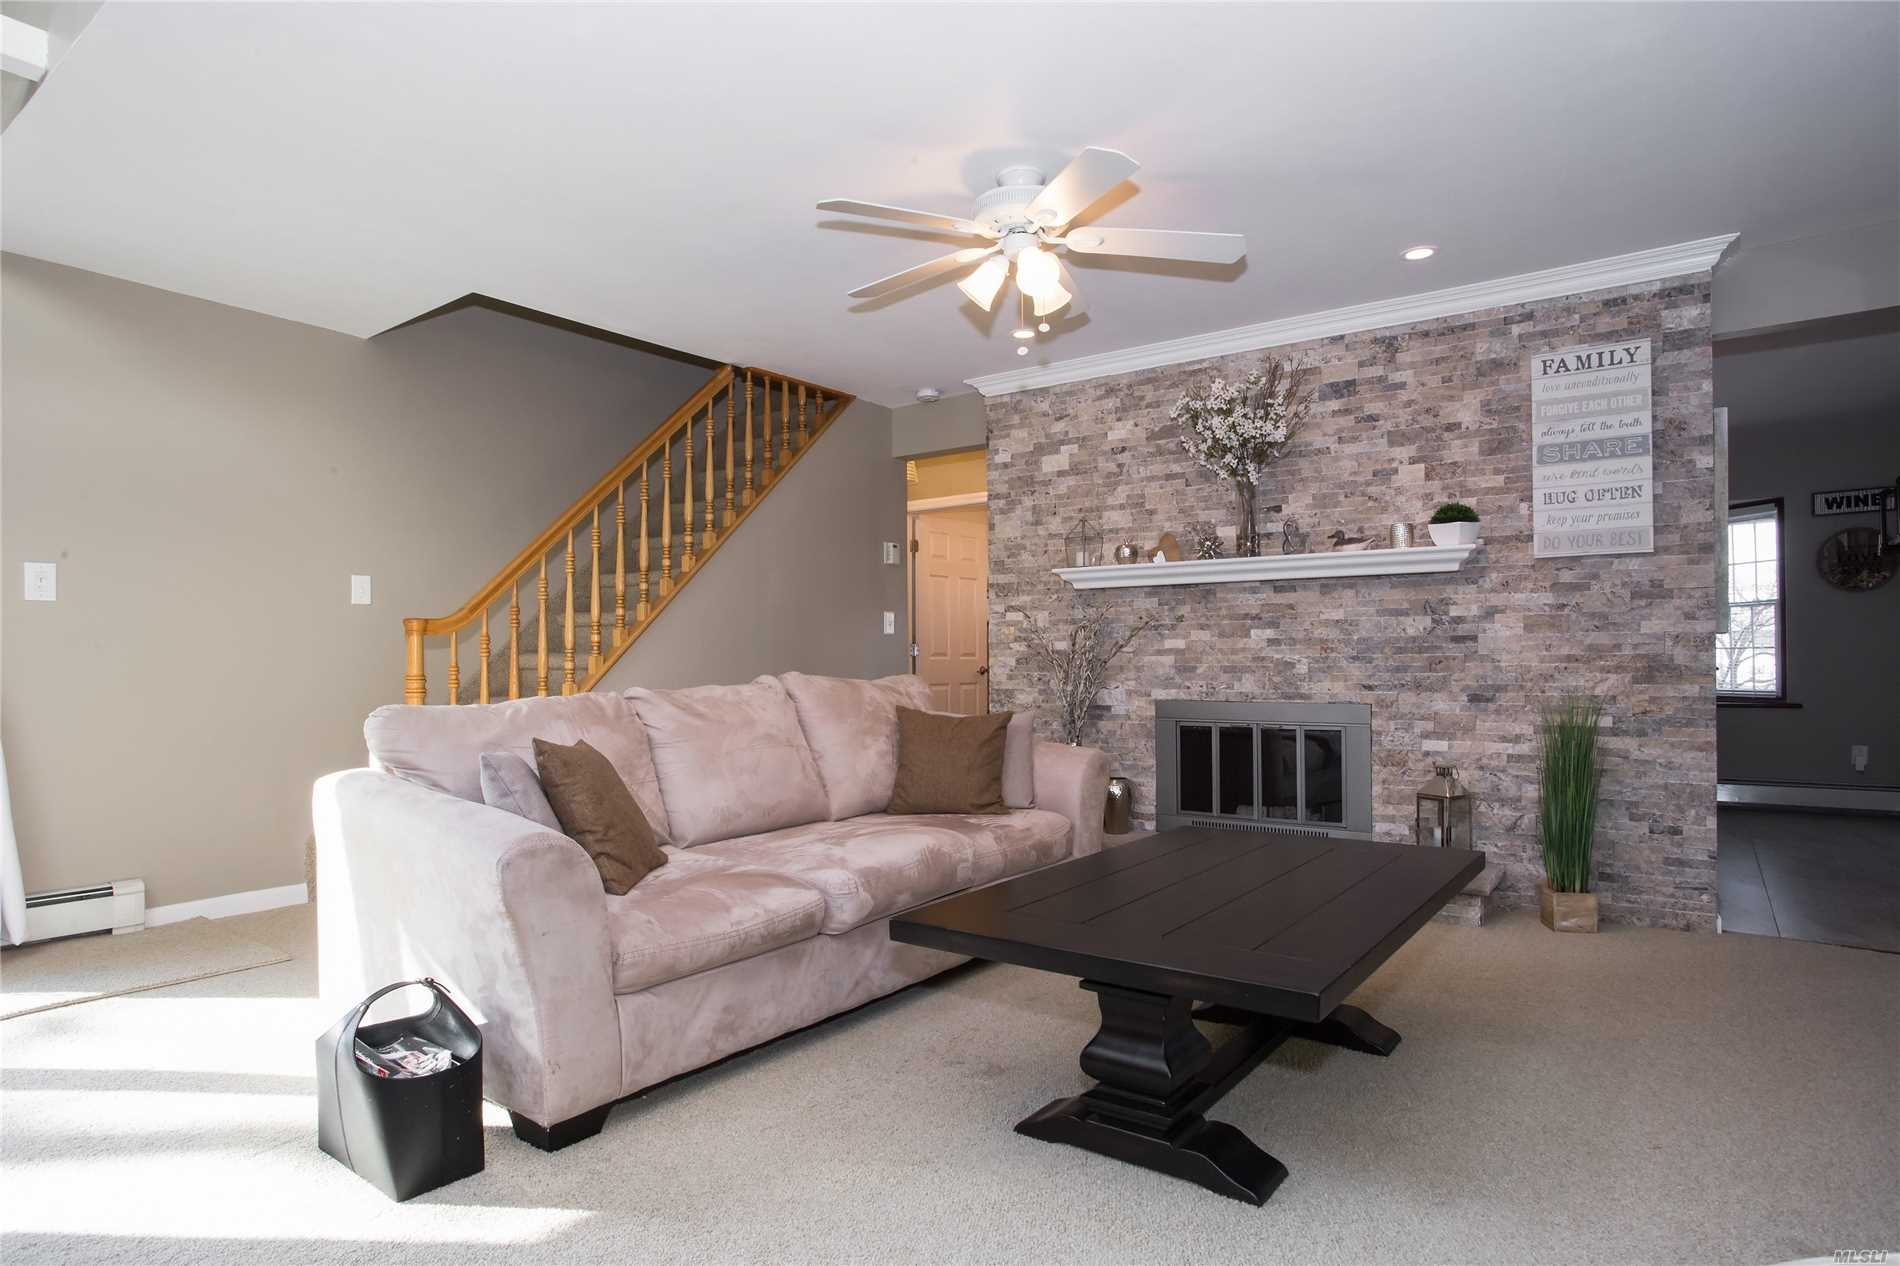 This home is a beautiful Levittown gem. This completely updated mid-block cape is move-in ready!! Updates include new eat-in kitchen, new bathrooms, all new carpeting and stunning stone fireplace. Close to parks and shopping! Make this house your new Home!